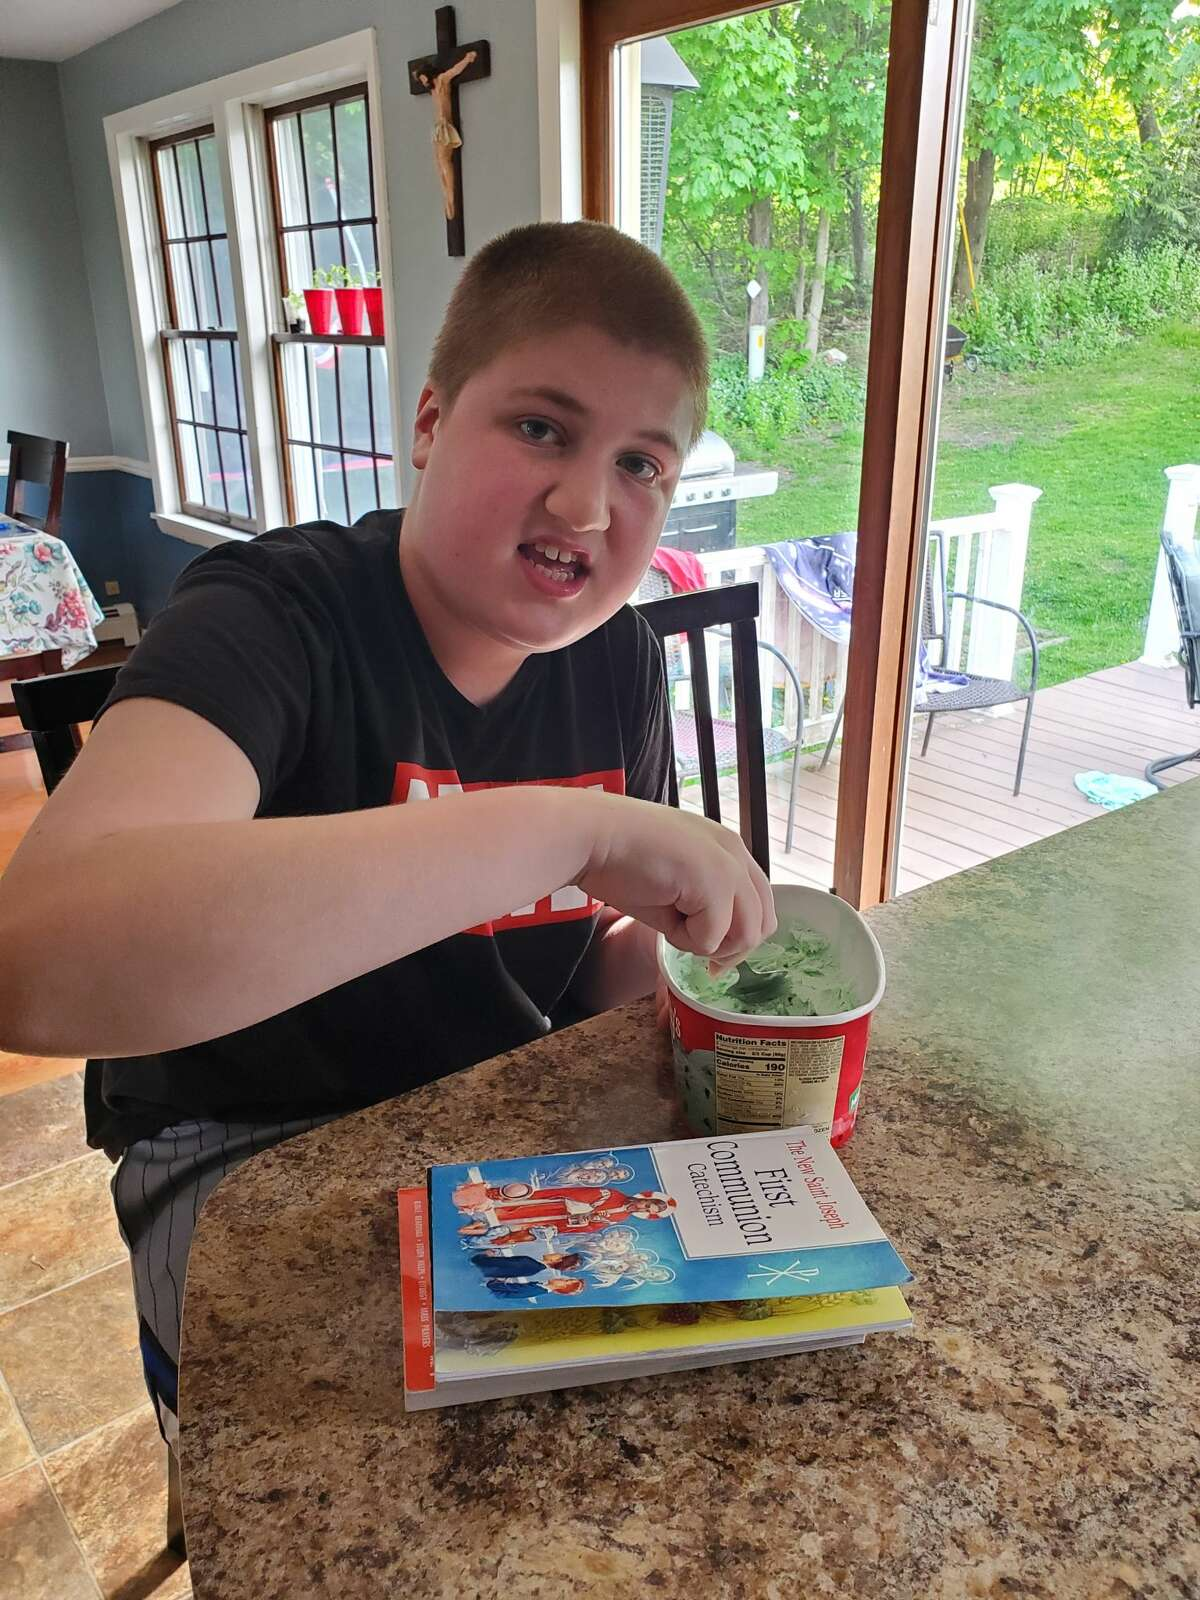 Kristopher Hoffman, 15, has struggled since having to stay home from the Wildwood School during the pandemic.